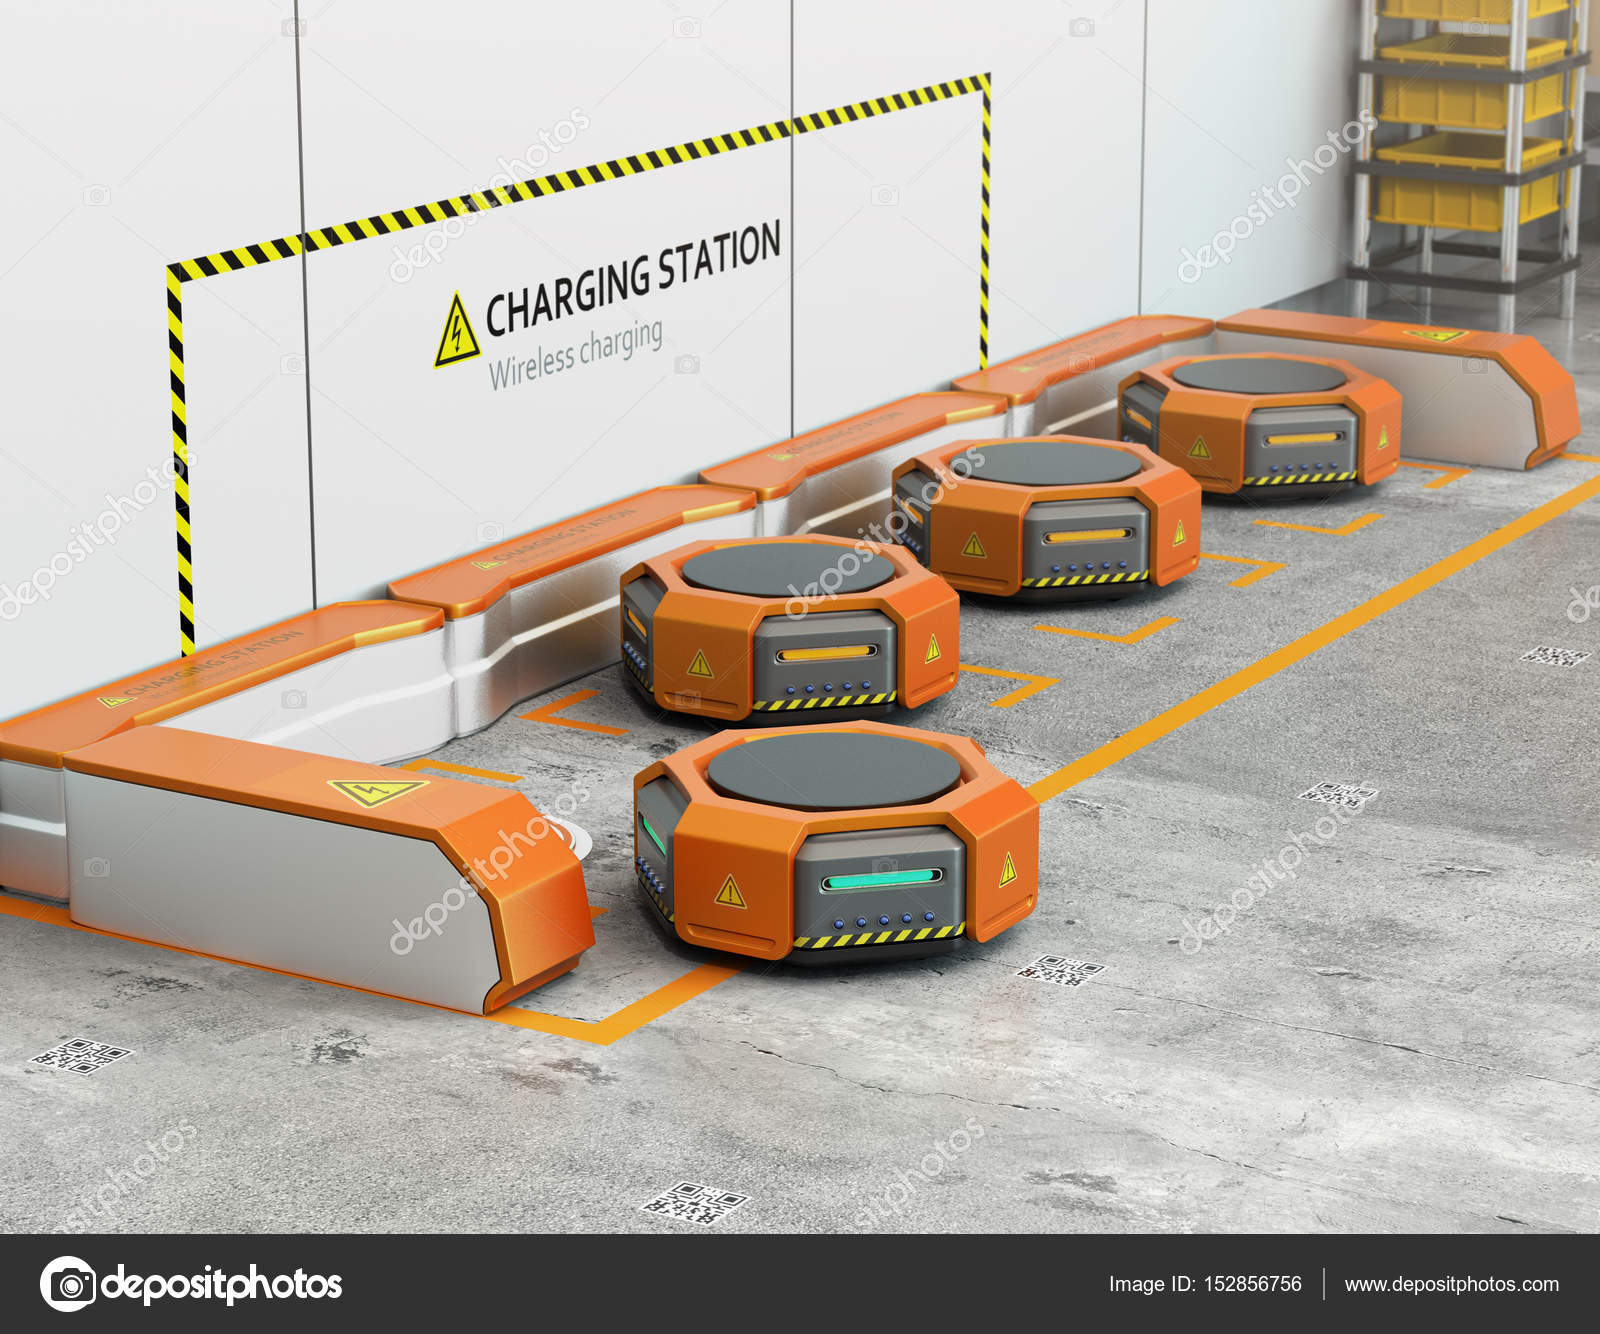 Warehouse robots charging at charging station — Stock Photo